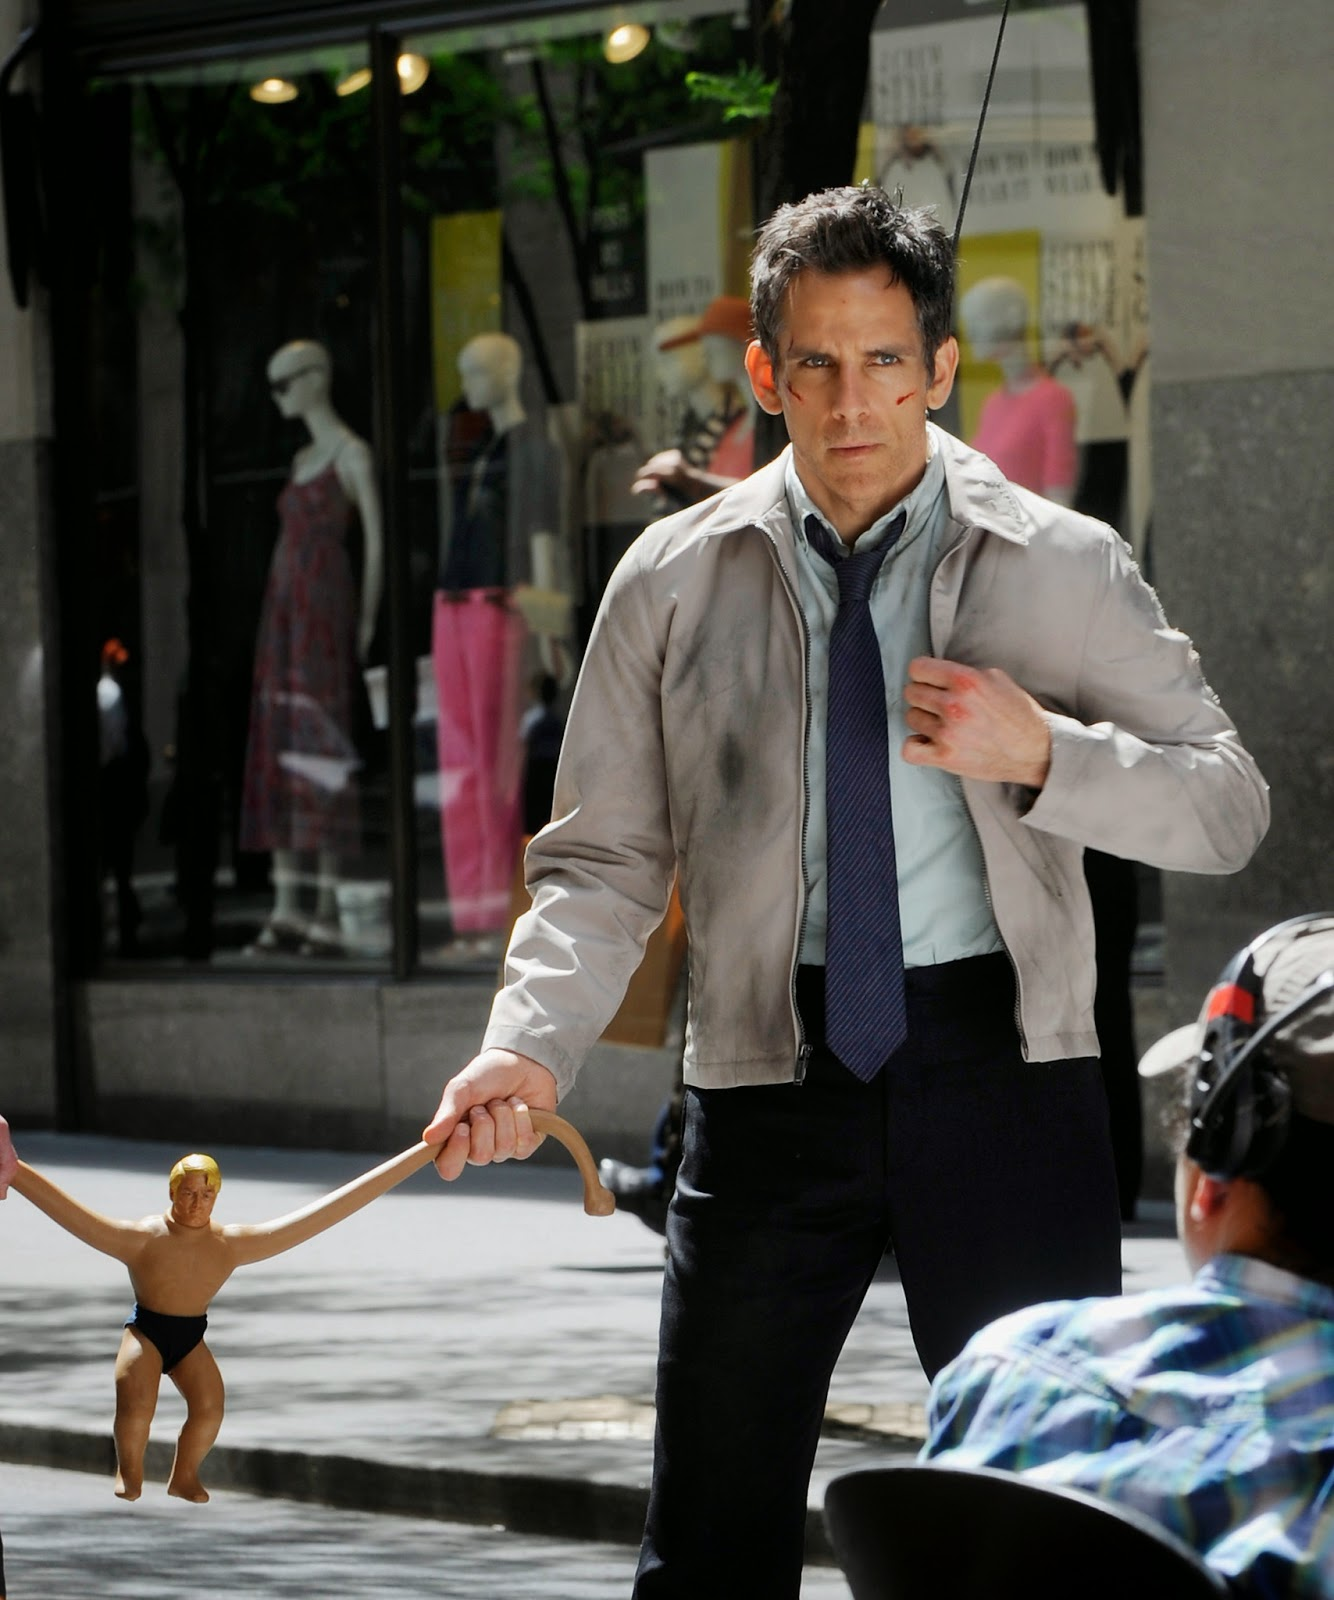 a comparison of the movie and the short story of the secret life of walter mitty James thurber's short story about a dreamy, mild man leading a mundane, boring life escaping into adventures was about 2100 words long ben stiller's adaptation of it is about 125 minutes.